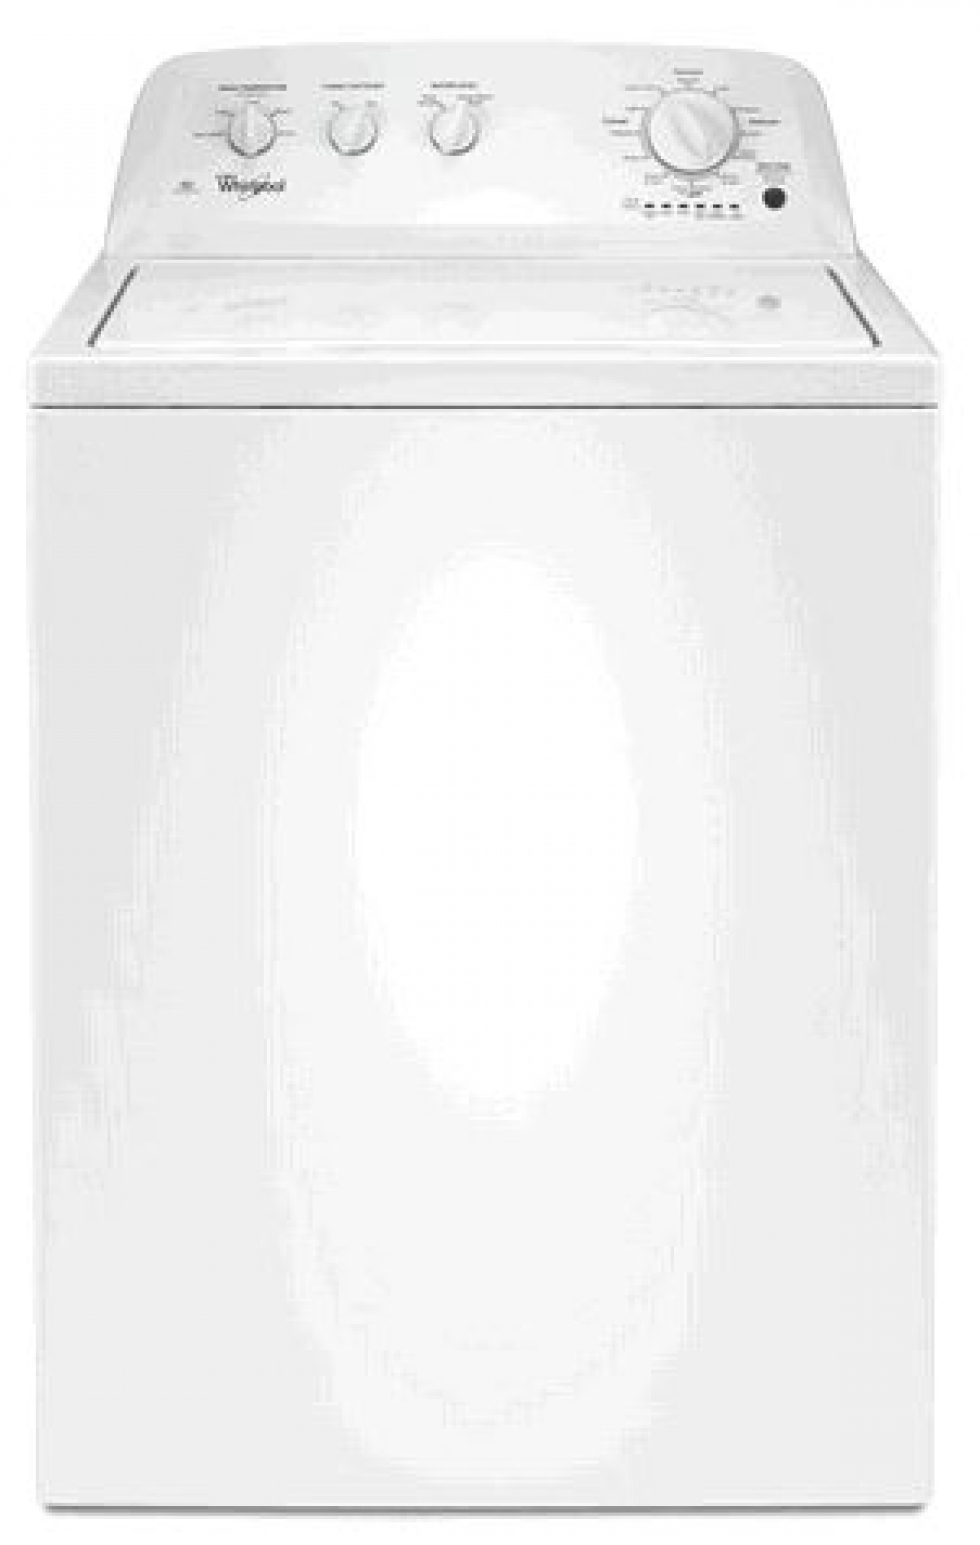 4.0 cu. ft. Top Load Washer with the Deep Water Wash option